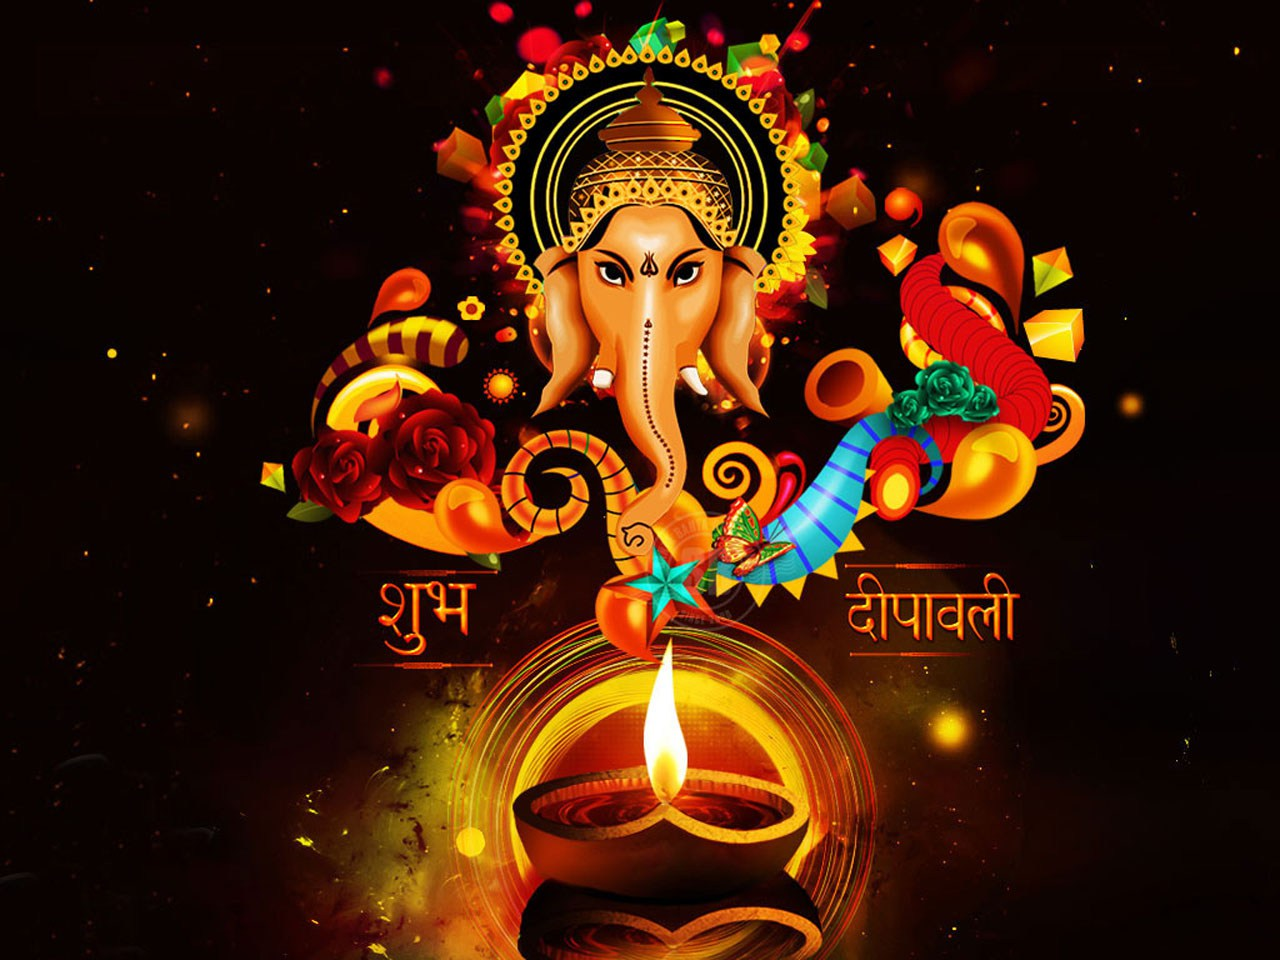 Download Diwali hd wallpapers for mobile - Diwali wallpapers for ... for diwali animated wallpaper for mobile  113cpg